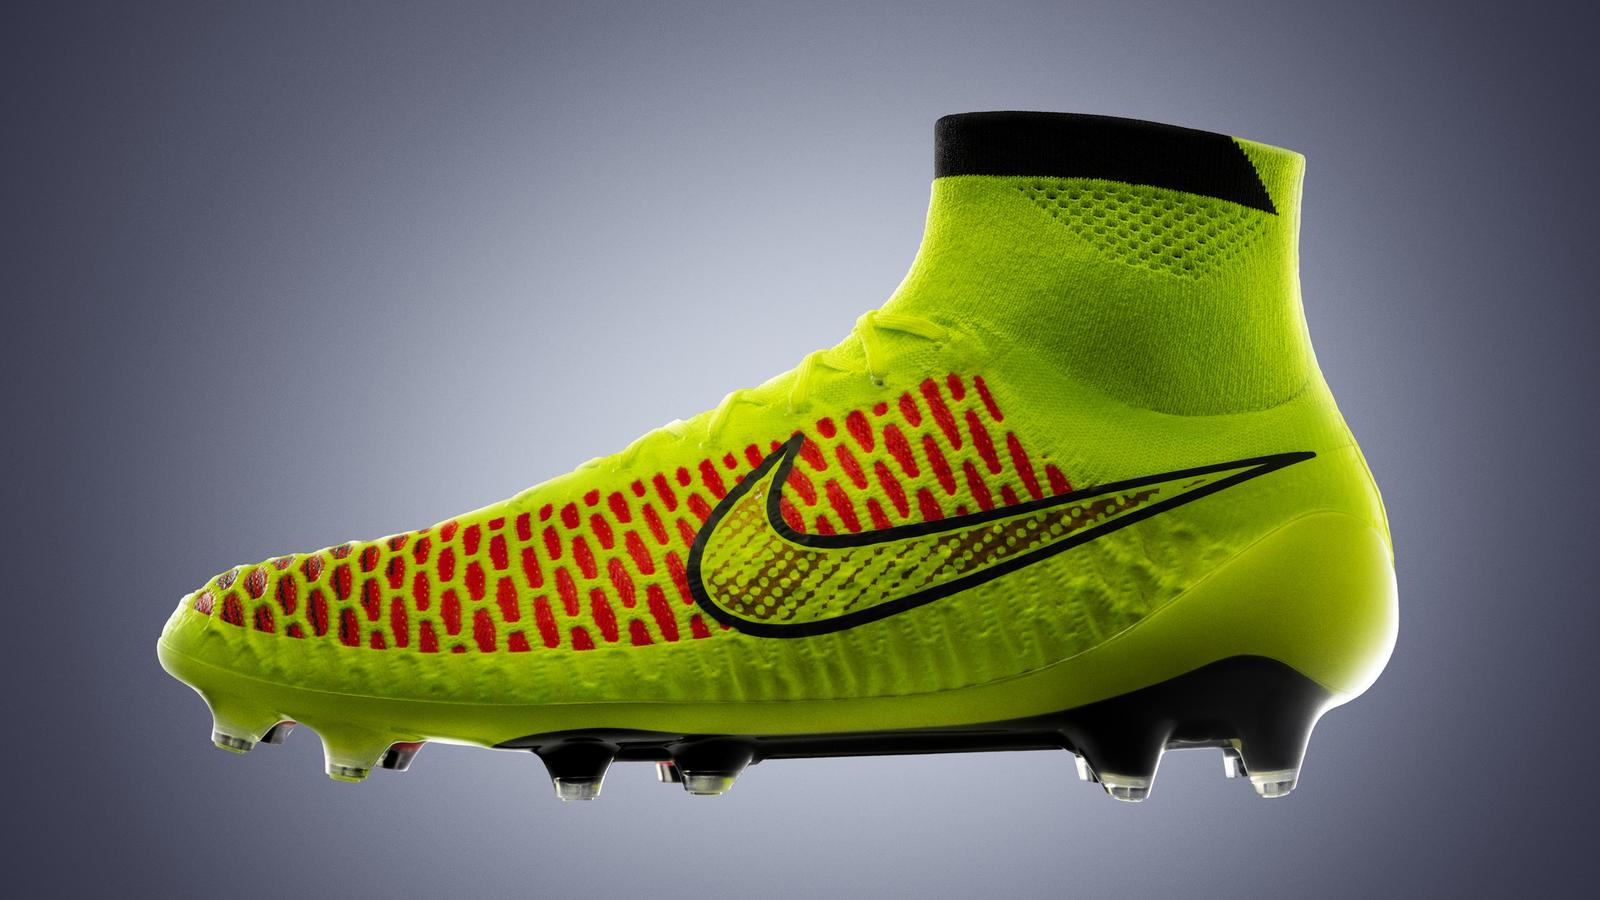 Nike Changes Football Boots Forever with New Magista ... - photo#6